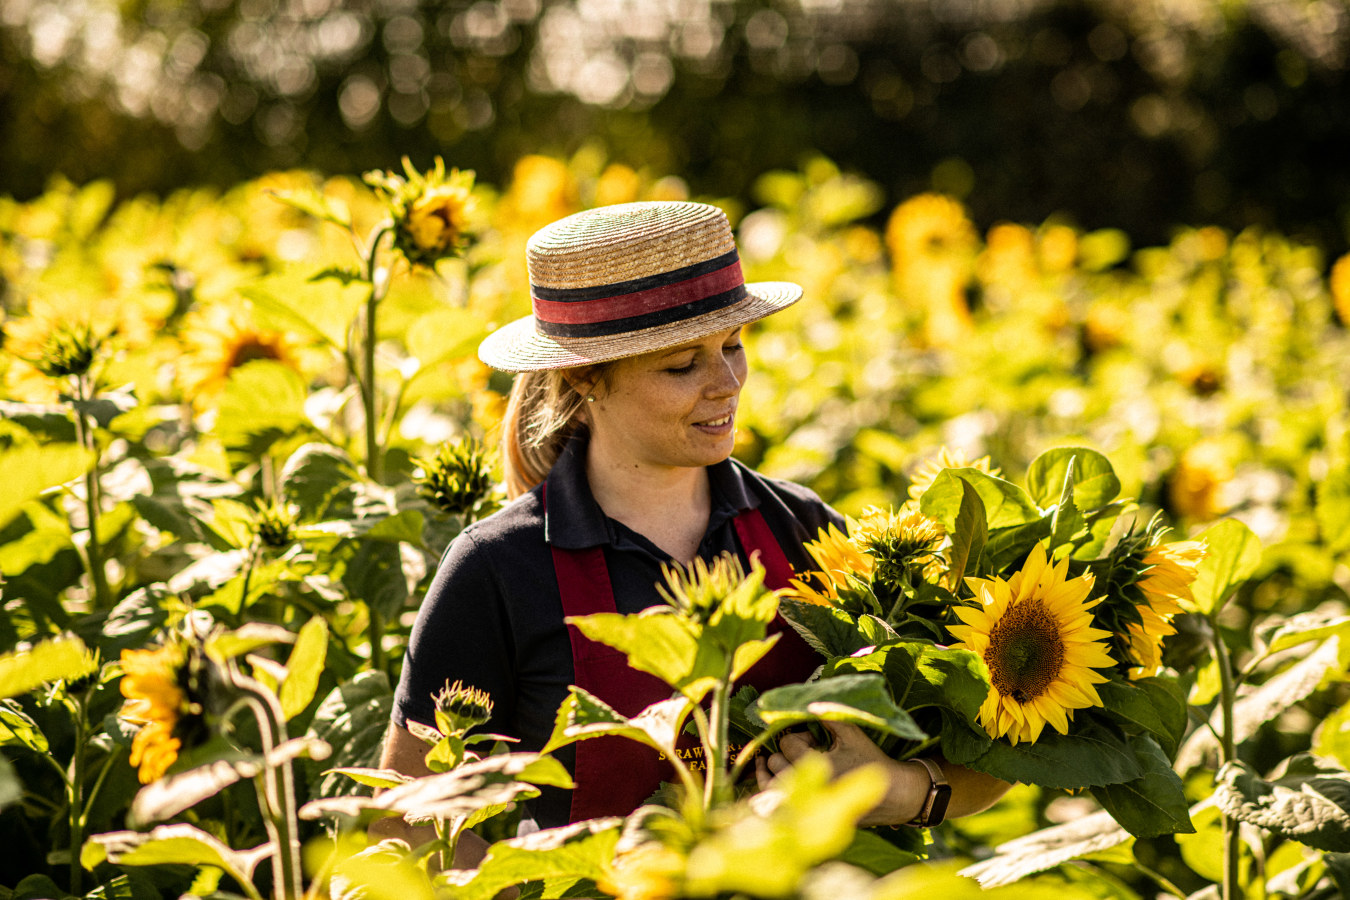 Woman picking Sunflowers in field